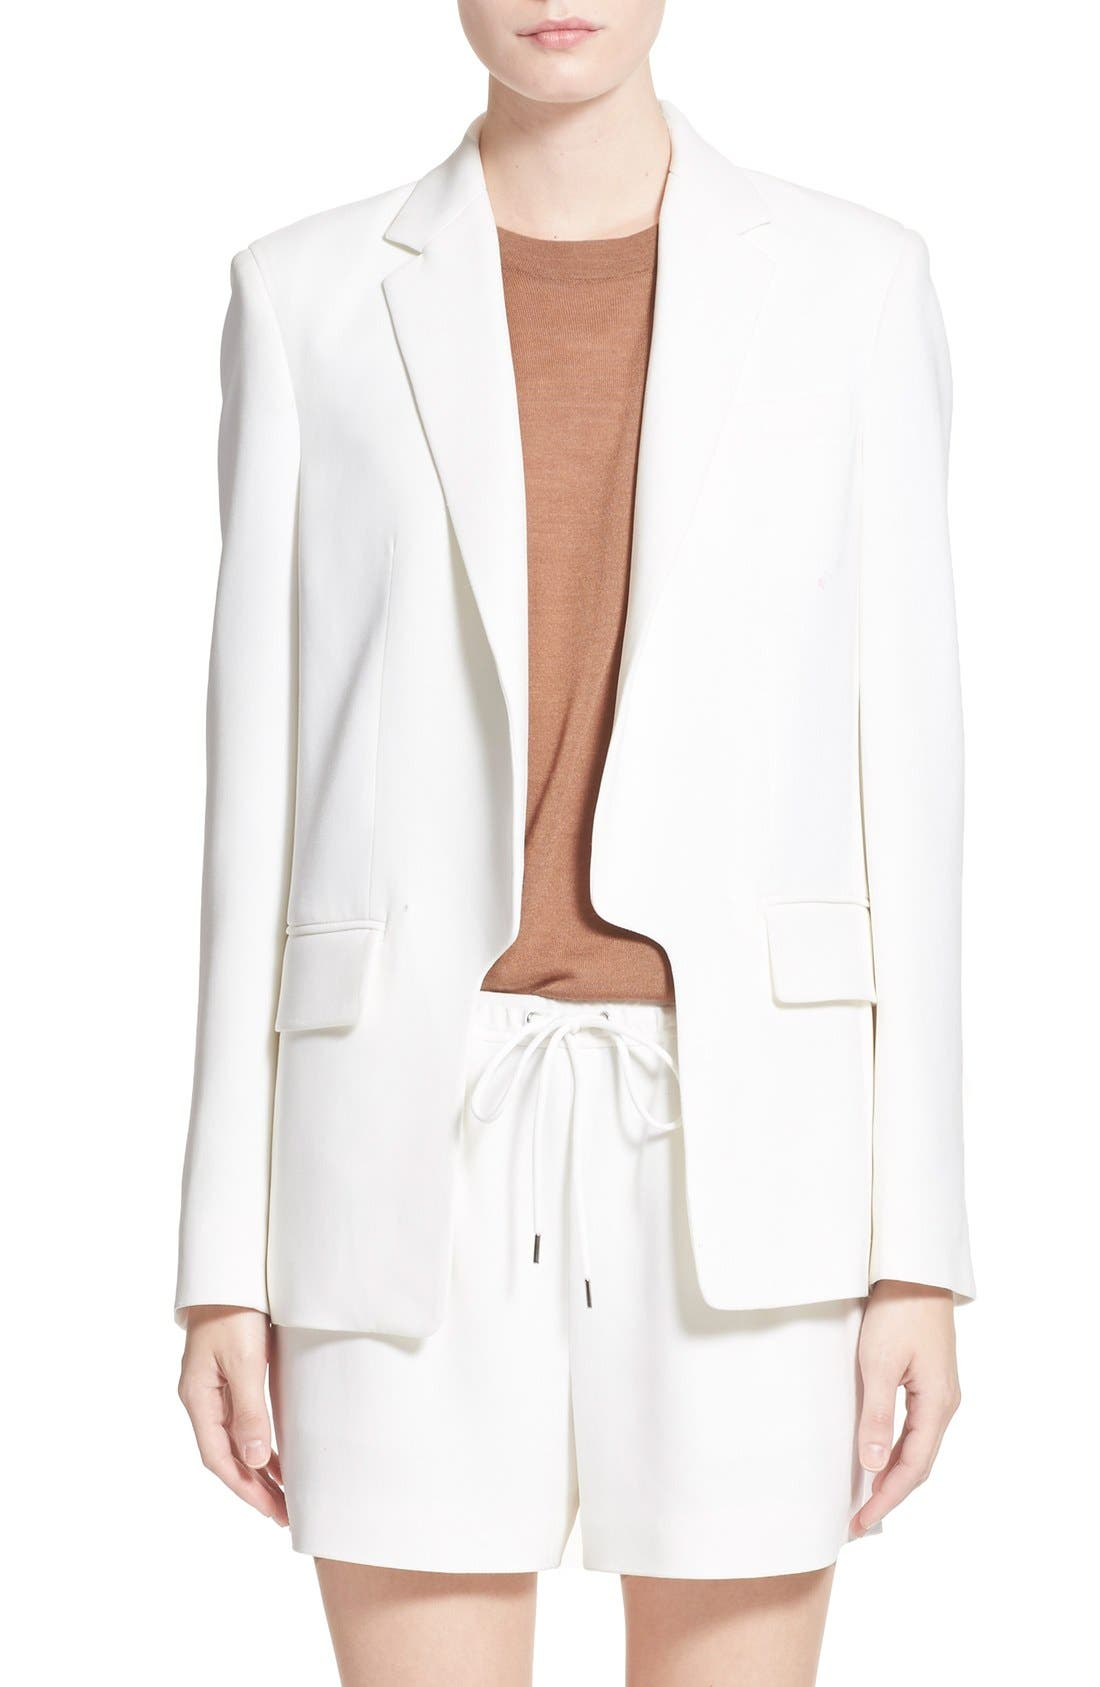 Alternate Image 1 Selected - Alexander Wang Straight Fit Blazer